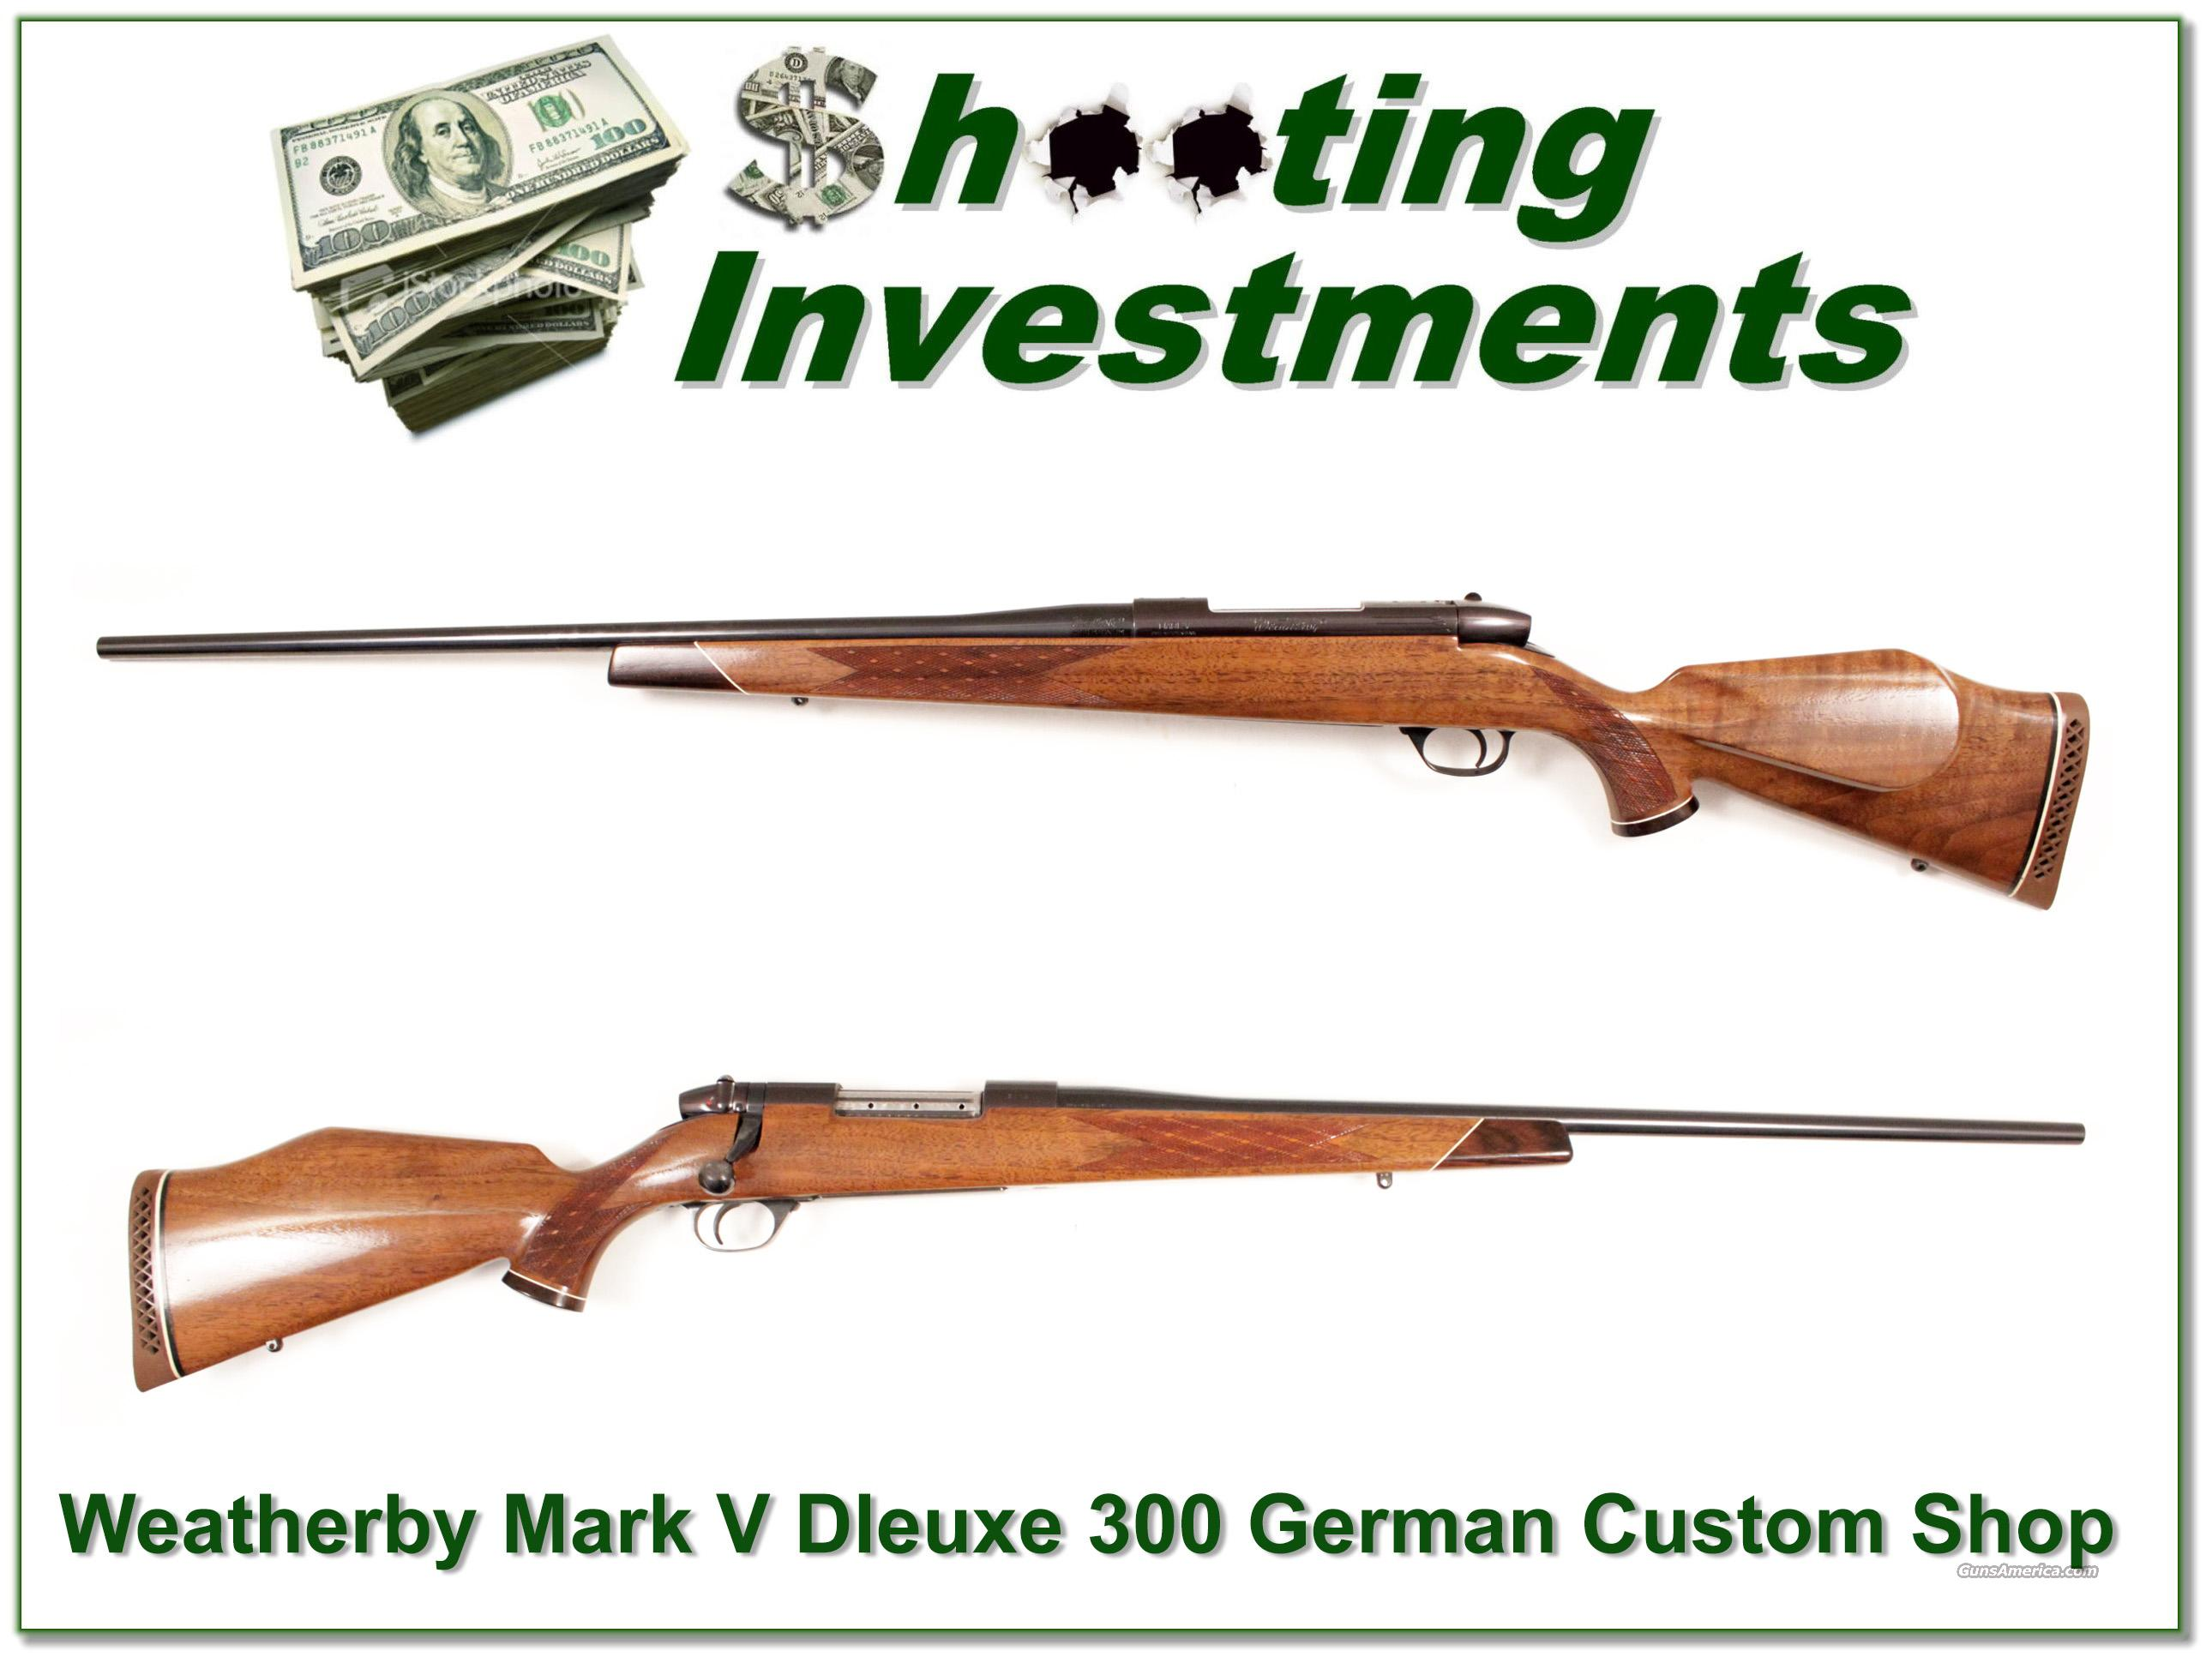 Weatherby Mark V Deluxe 300 Wthy 1962 German near new  Guns > Rifles > Weatherby Rifles > Sporting